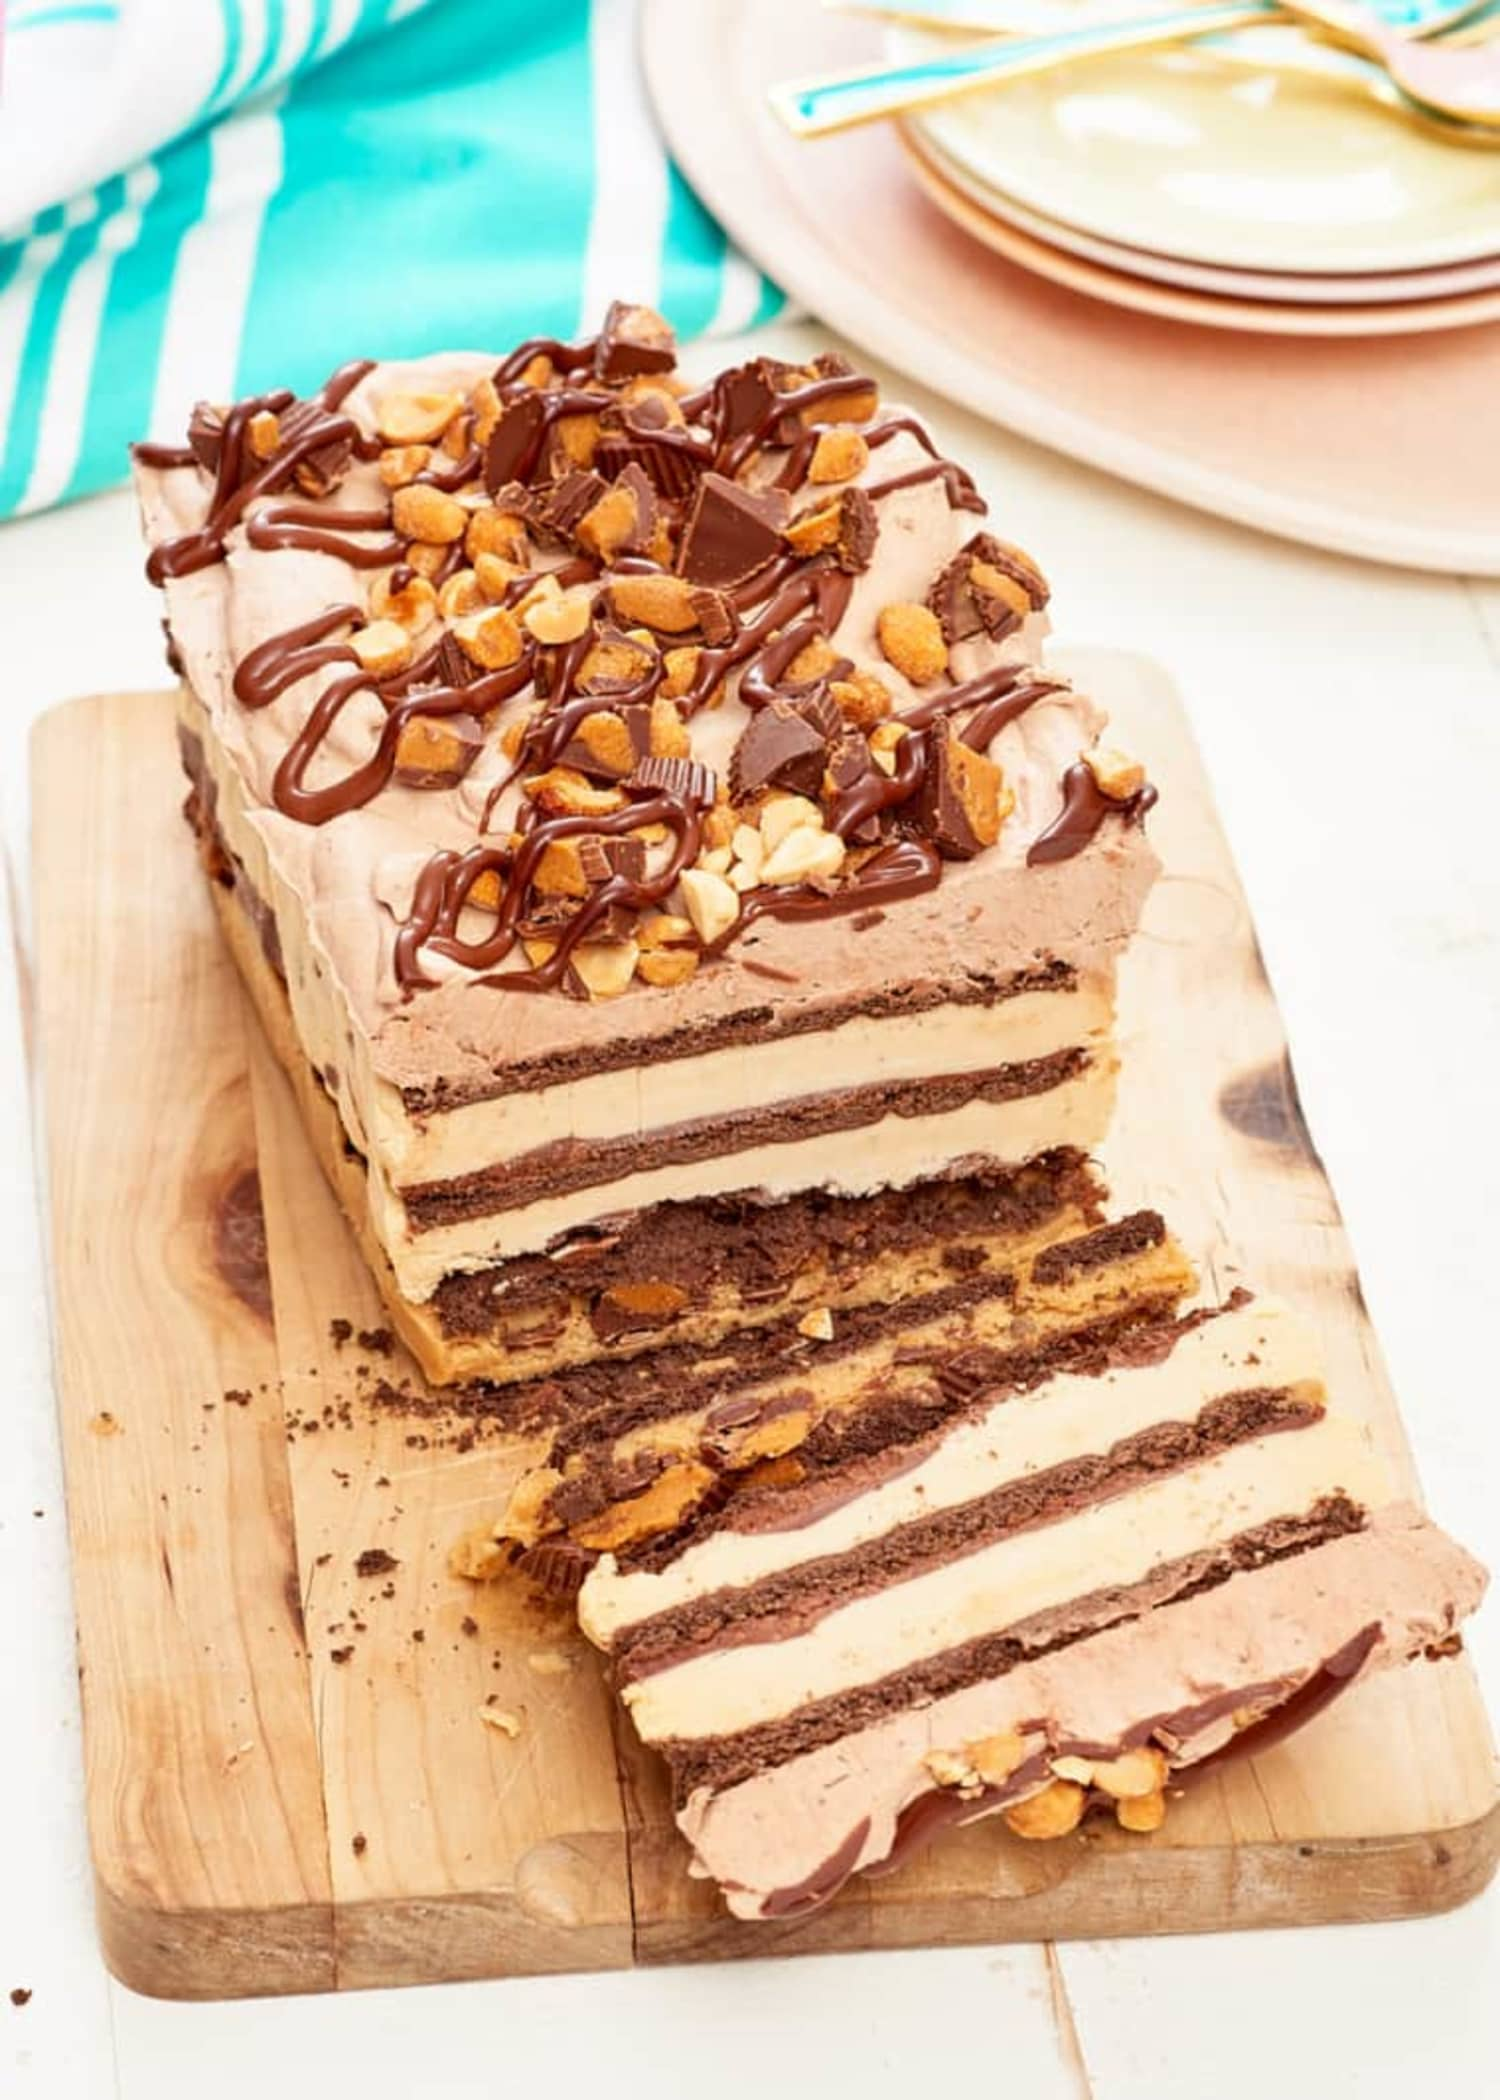 50 No-Bake Desserts to Satisfy Your Sweet Tooth